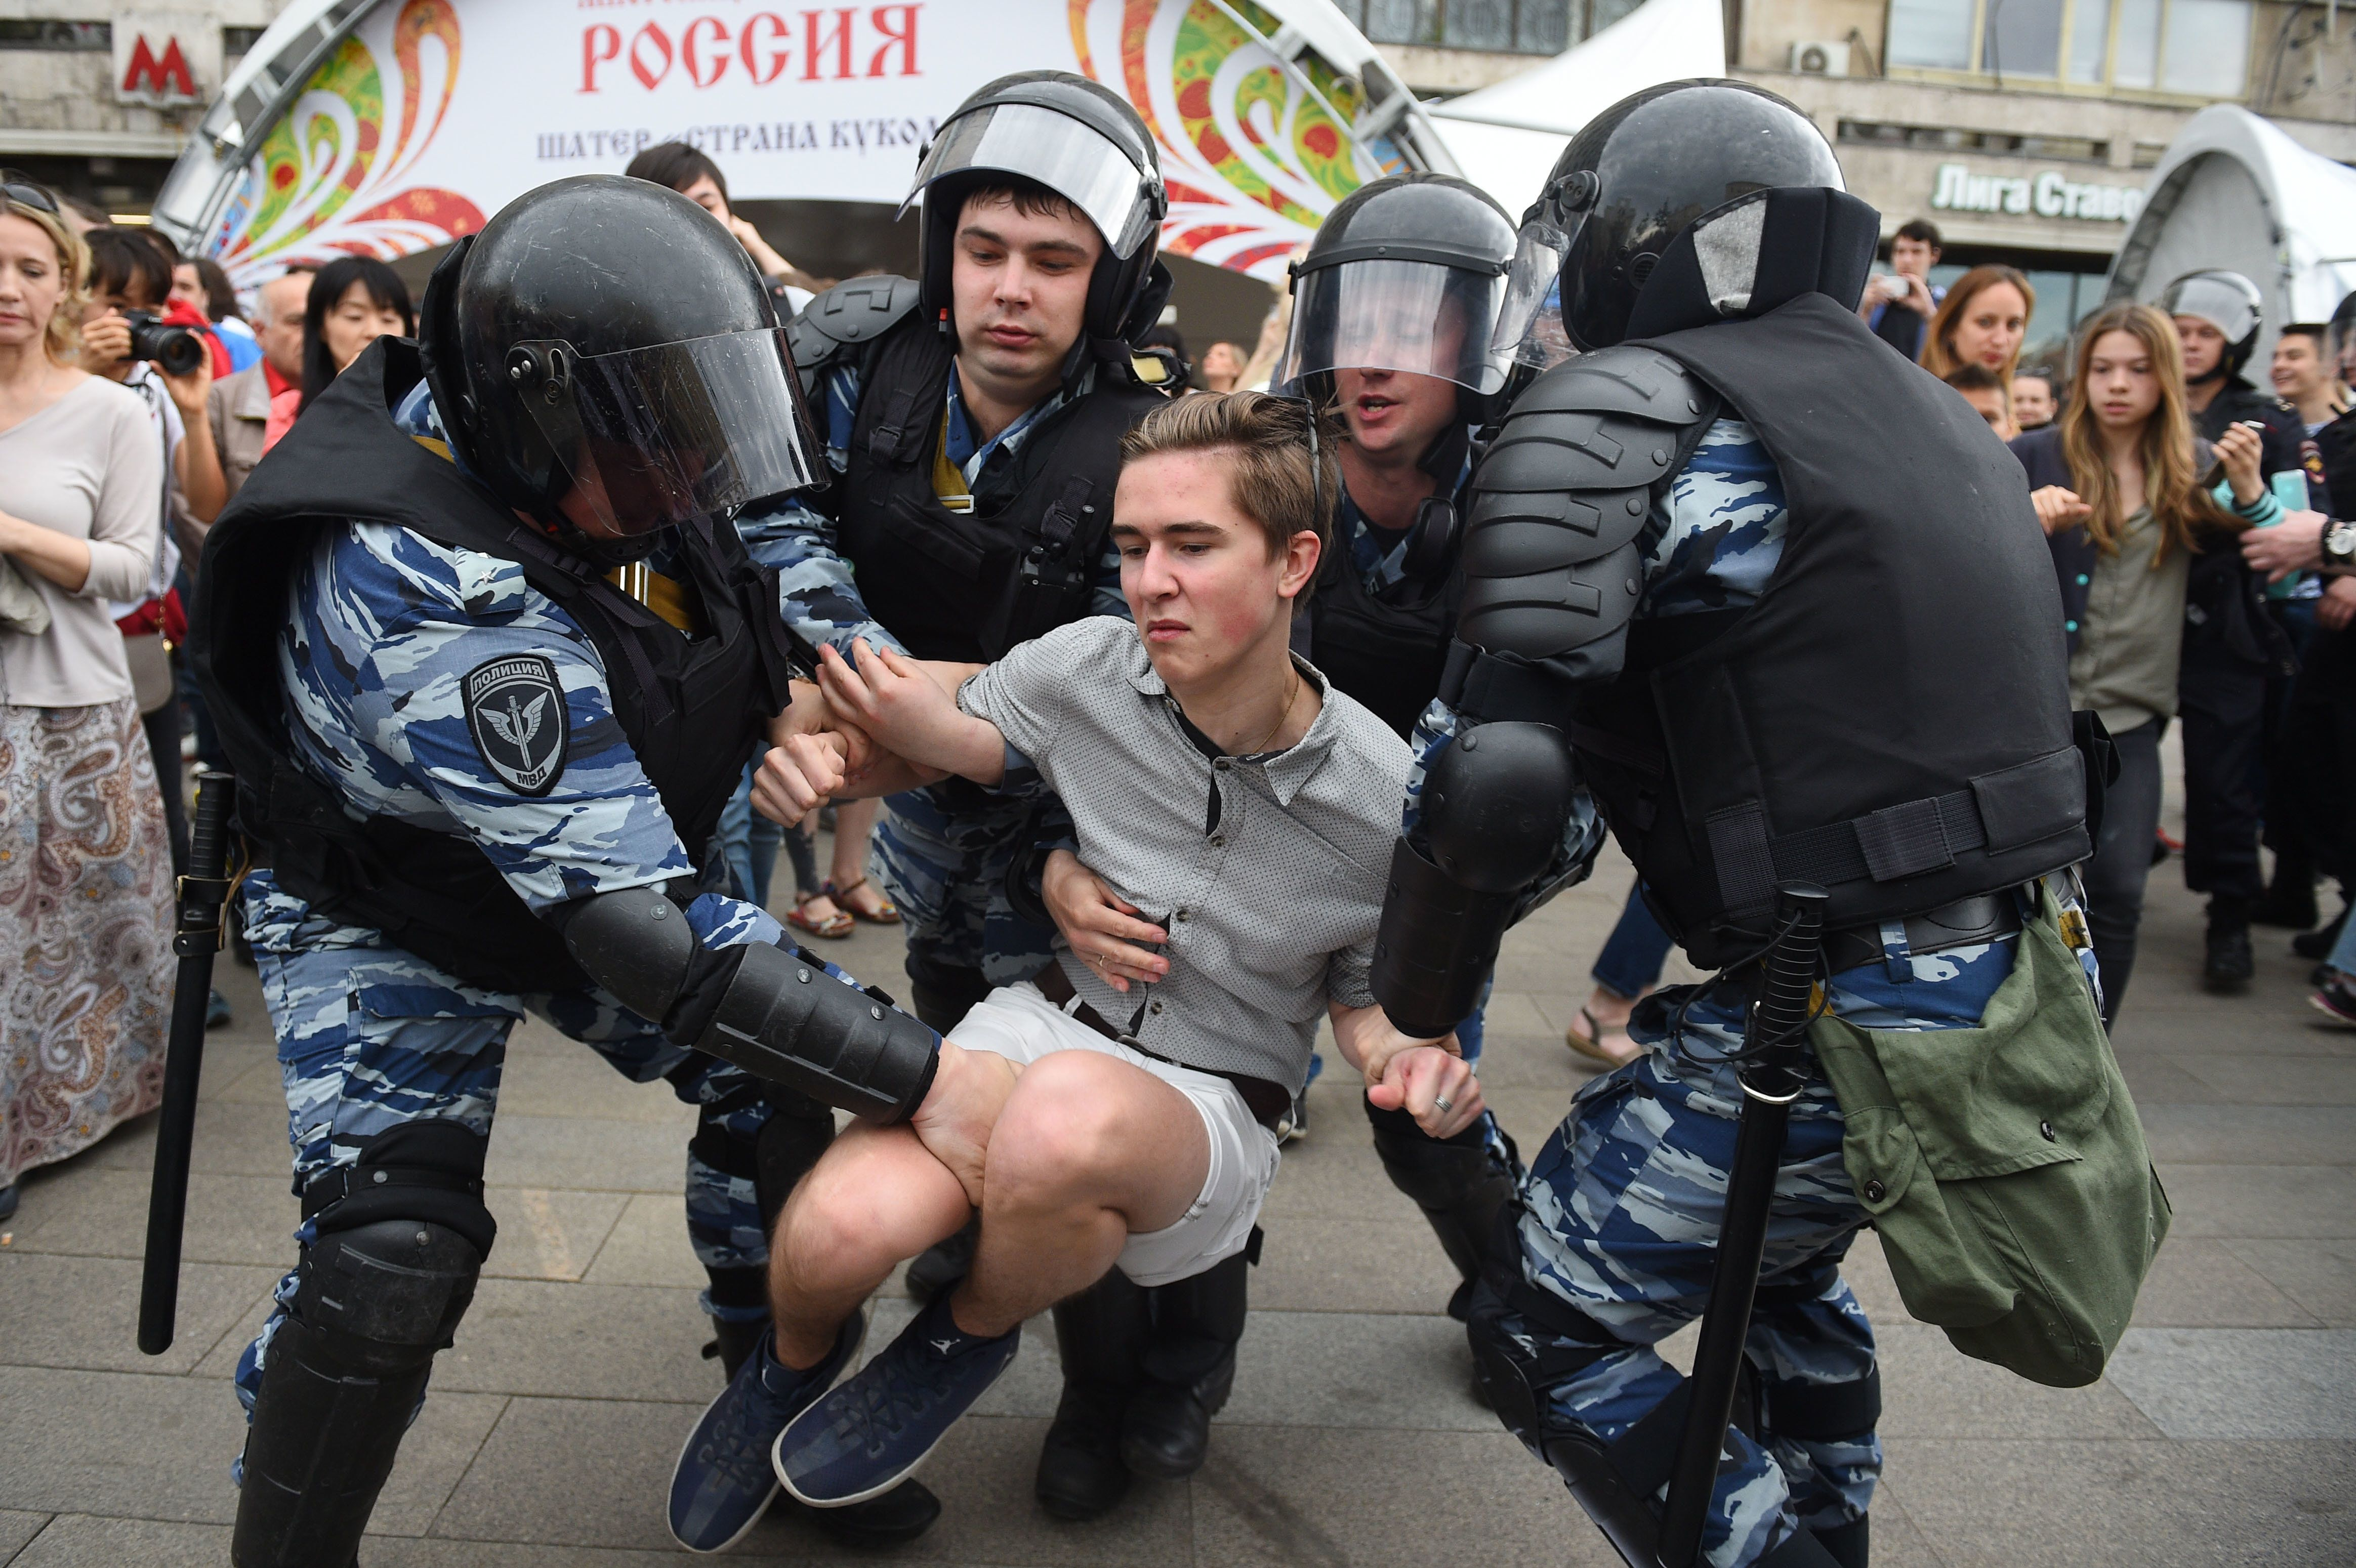 Russian police officers detain a participant of an unauthorized opposition rally in Tverskaya street in central Moscow on June 12, 2017.  Over 200 people were detained on June 12, 2017 by police at opposition protests called by Kremlin critic Alexei Navalny, said a Russian NGO tracking arrests. 'About 121 people were detained in Moscow up to this point. In Saint-Petersburg - 137,' OVD-Info group, which operates a detention hotline, wrote on Twitter.  / AFP PHOTO / STR        (Photo credit should read STR/AFP/Getty Images)